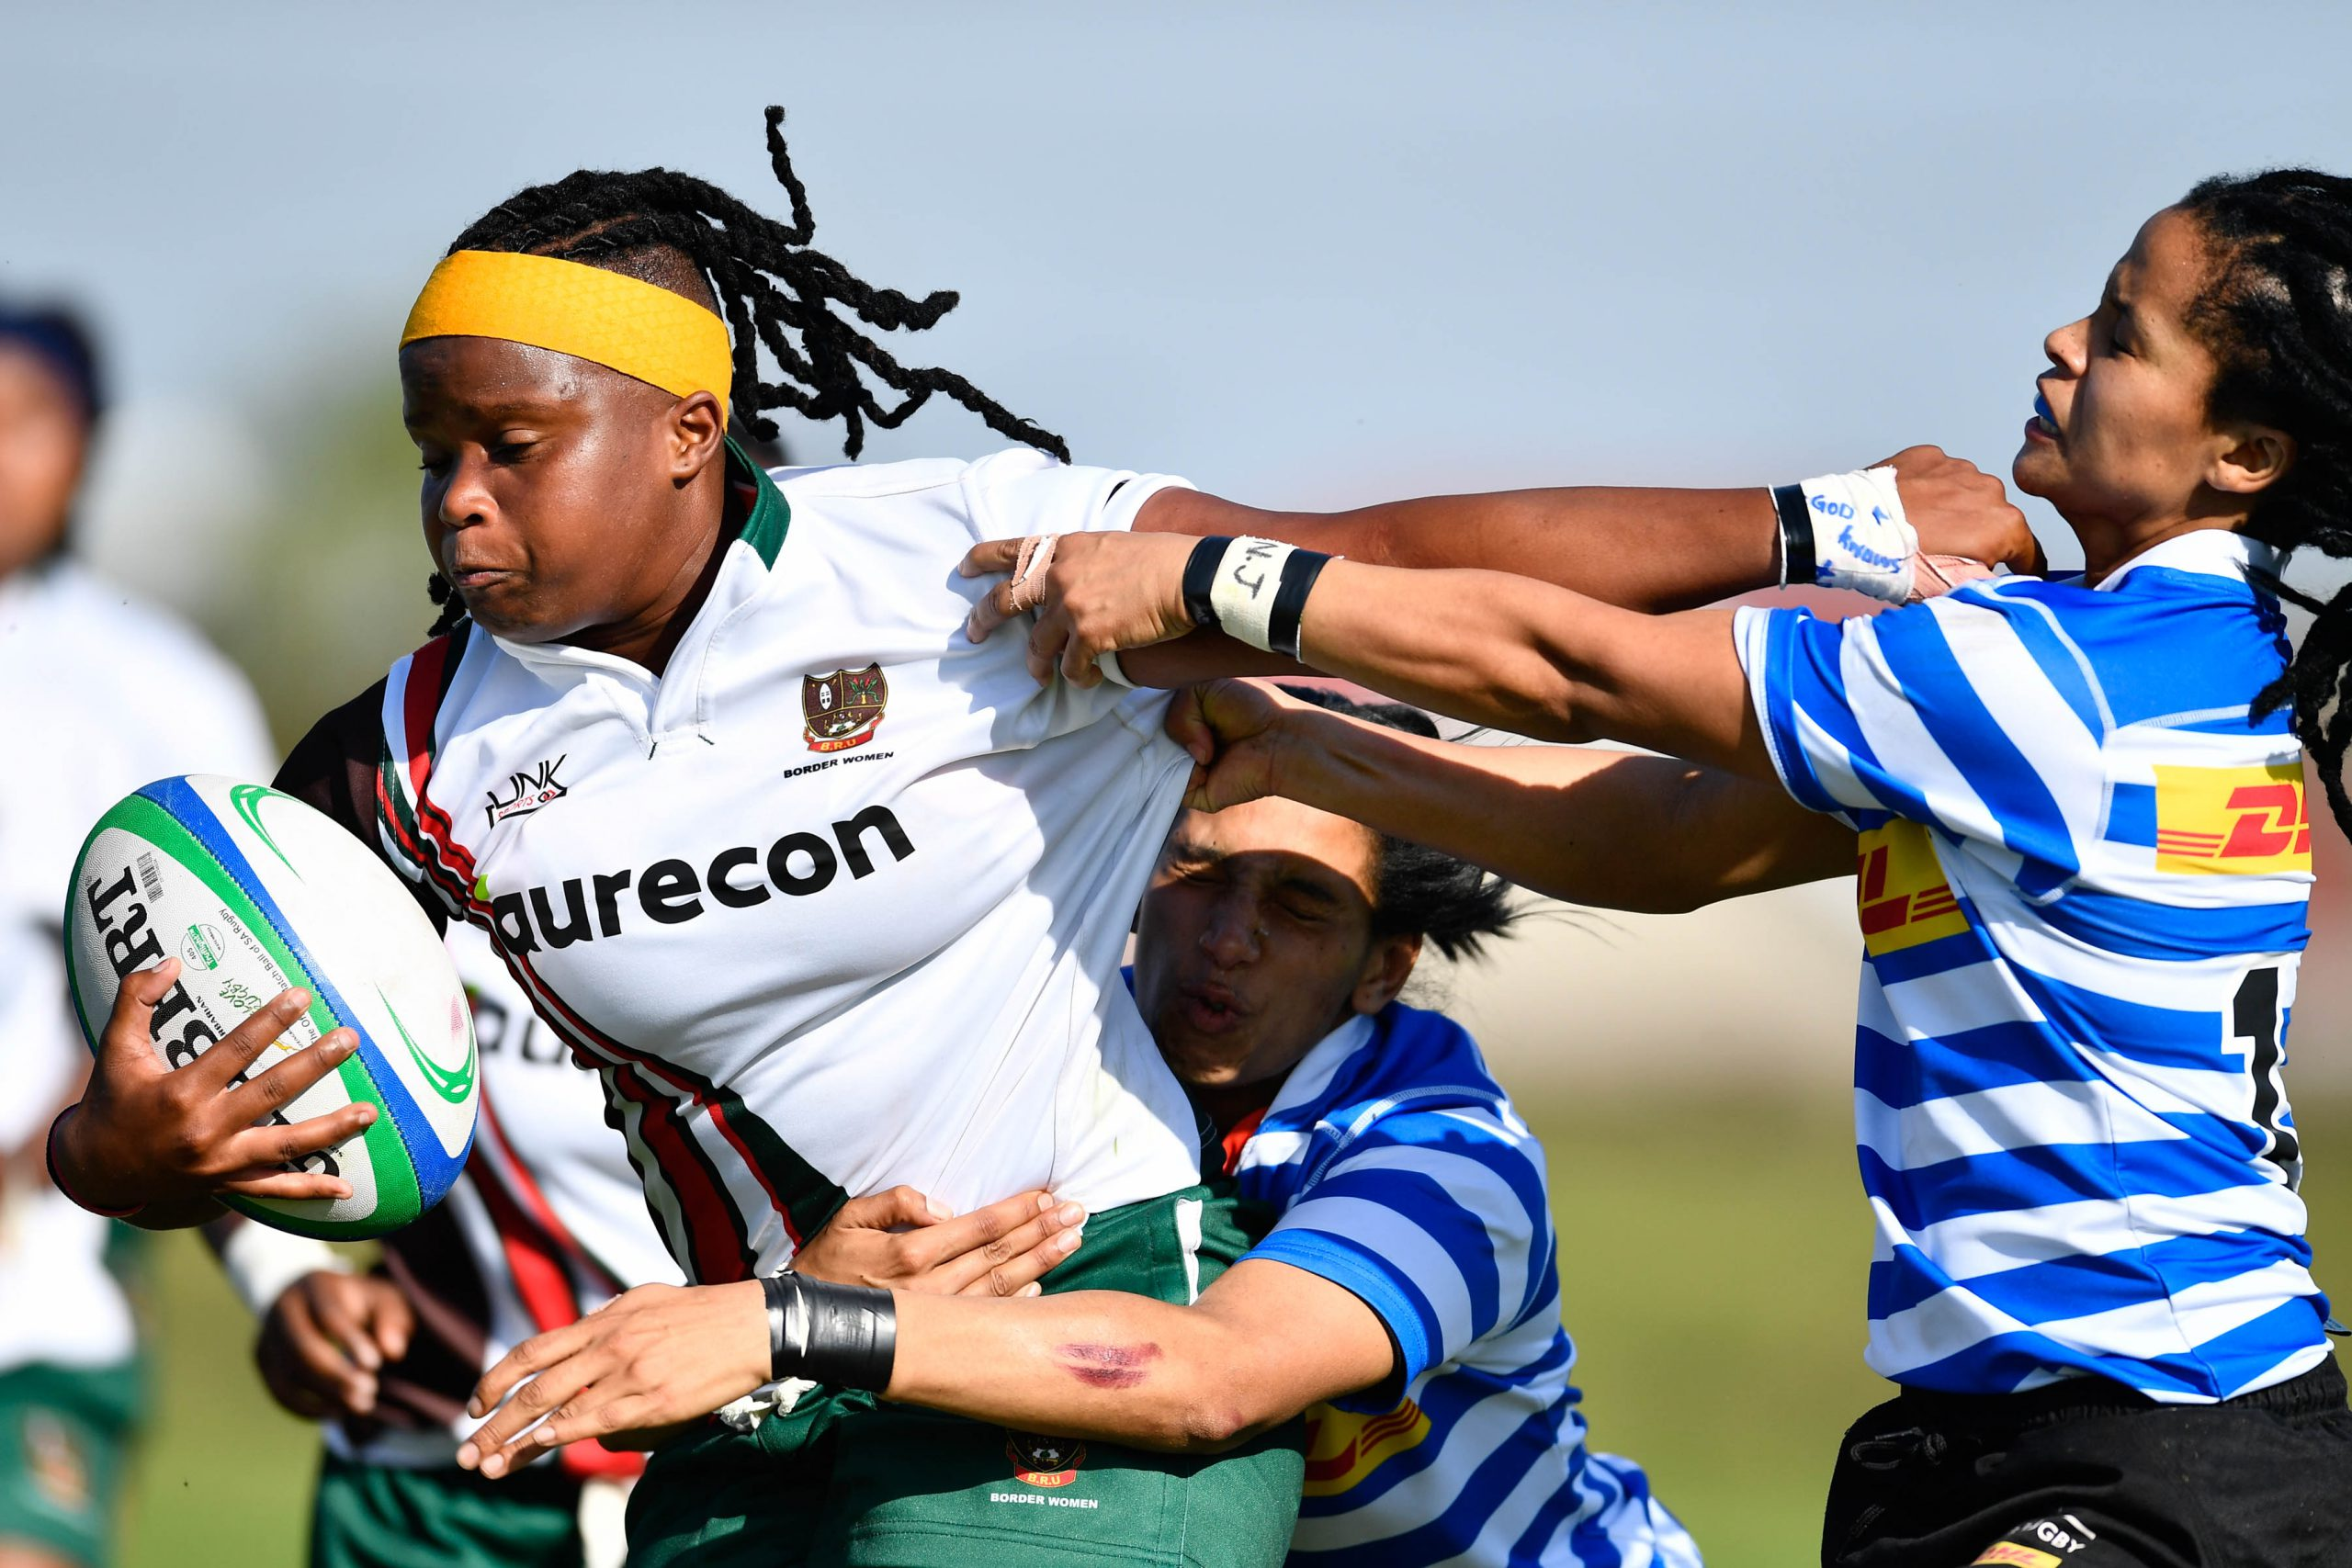 7 September 2019: Chuma Qawe of Border tackled by Kimico Shaunese Manuel and Felicia Jacobs of Western Province during the Women's Interprovincial A section final match. (Photograph by Ashley Vlotman/Gallo Images)